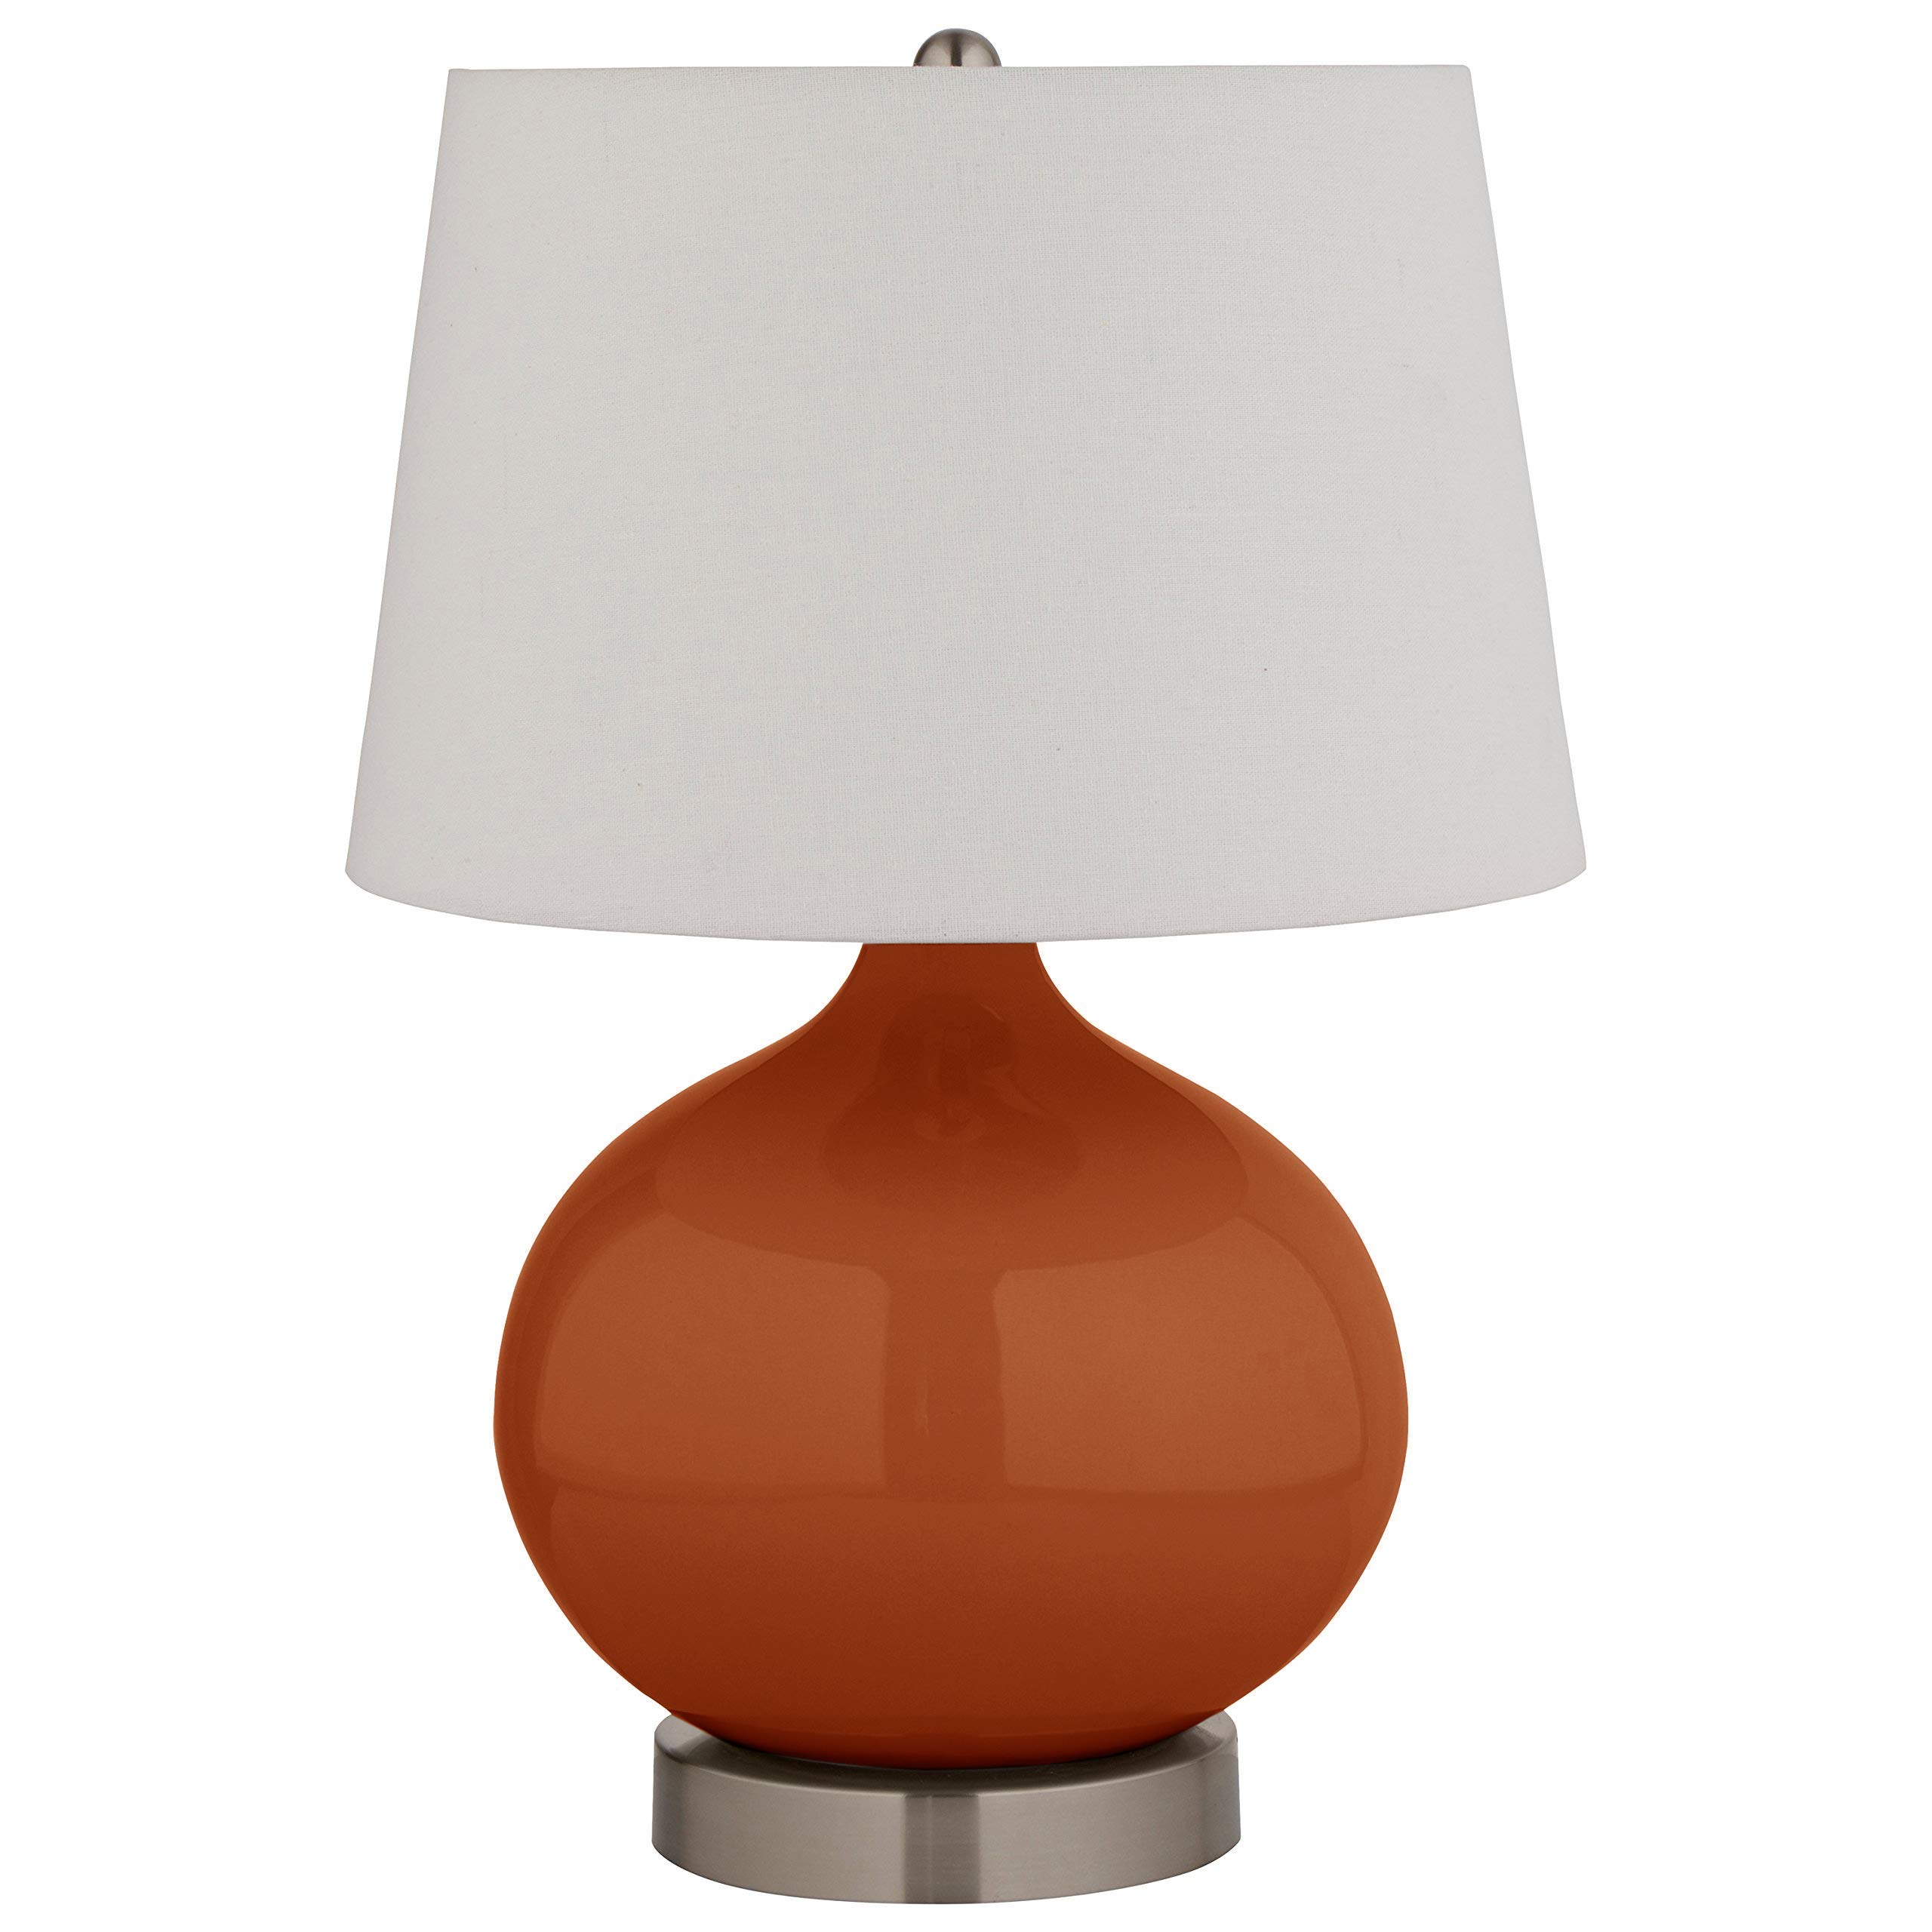 Stone & Beam Round Ceramic Table Desk Lamp with Light Bulb - 11 x 11 x 20 Inches, Burnt Orange and White Shade by Stone & Beam